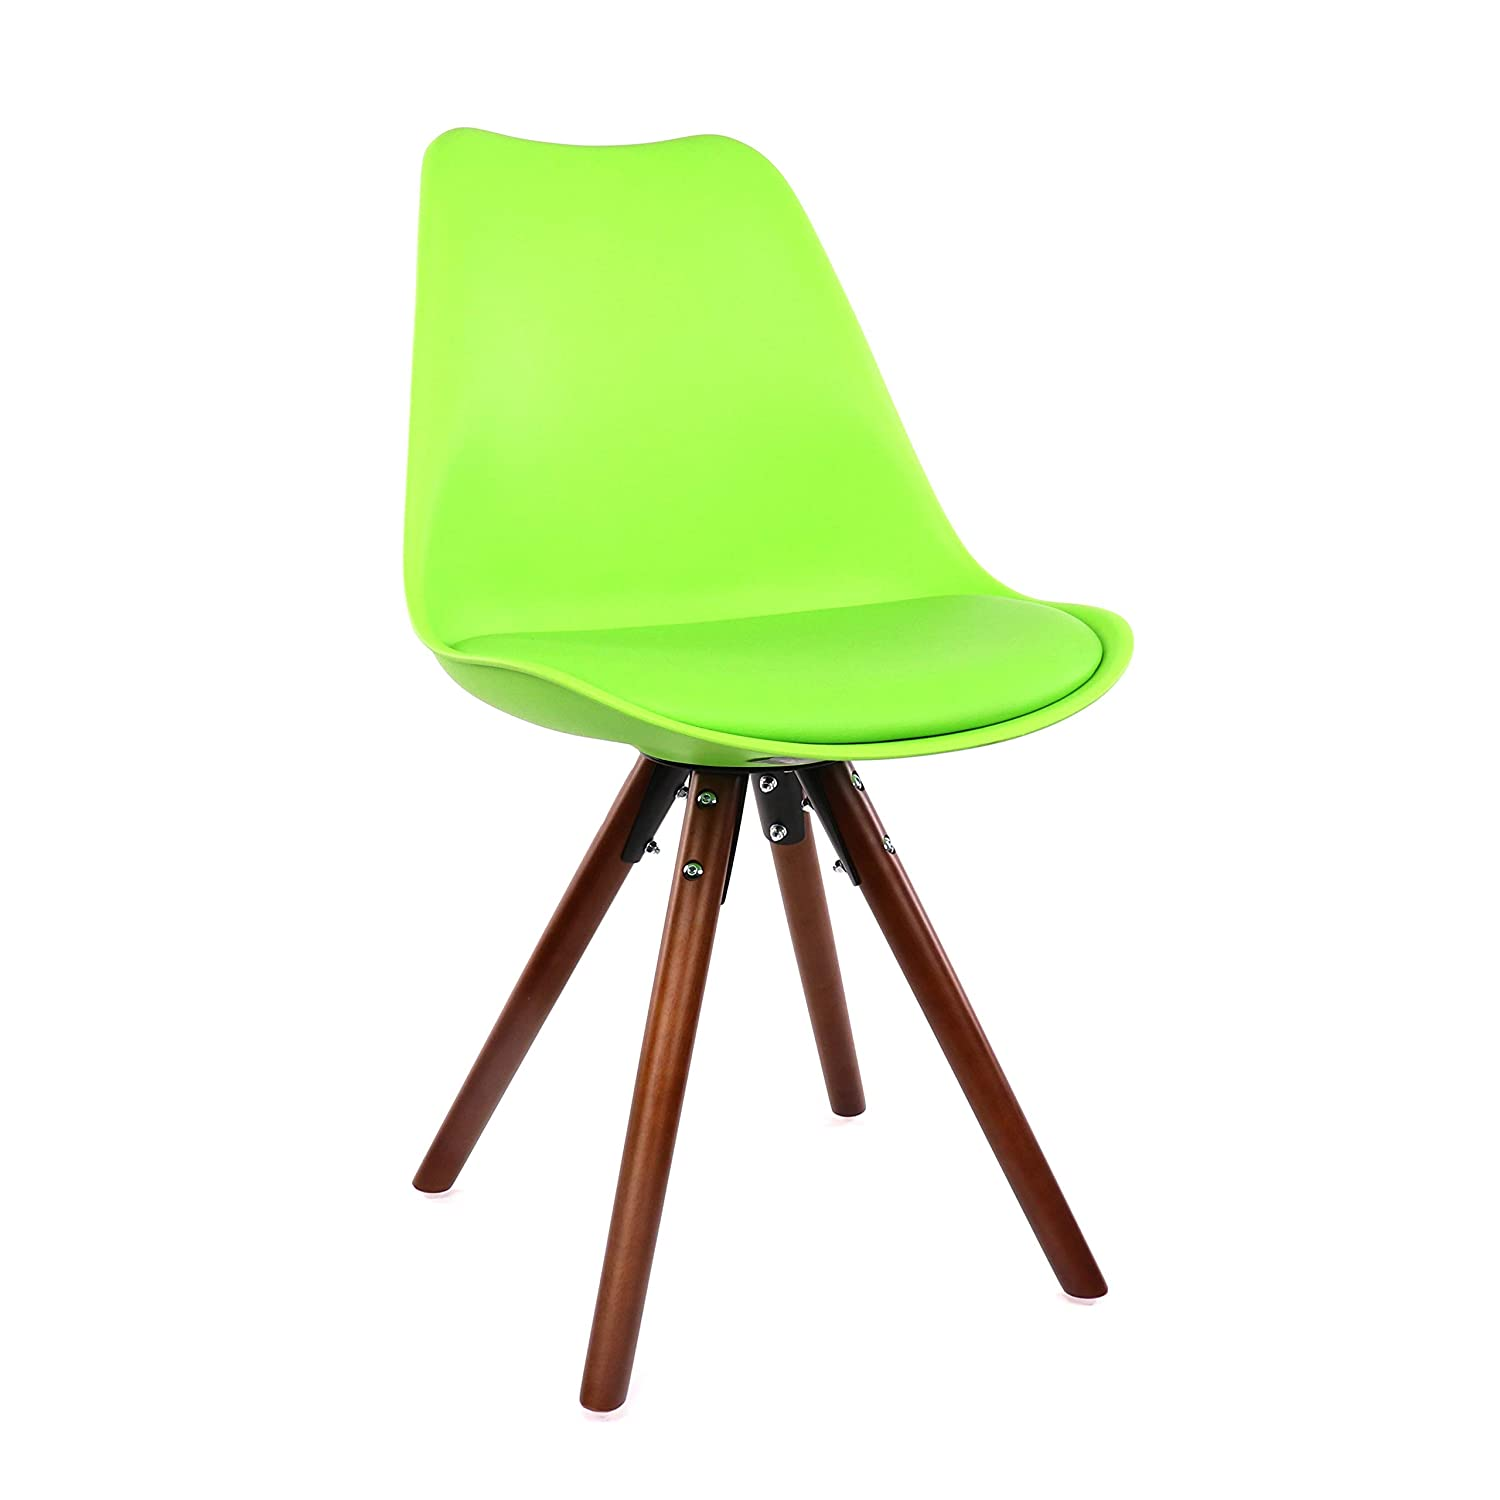 Design Lab MN Midcentury Dining Side Chairs, Set of 2, Green Seat